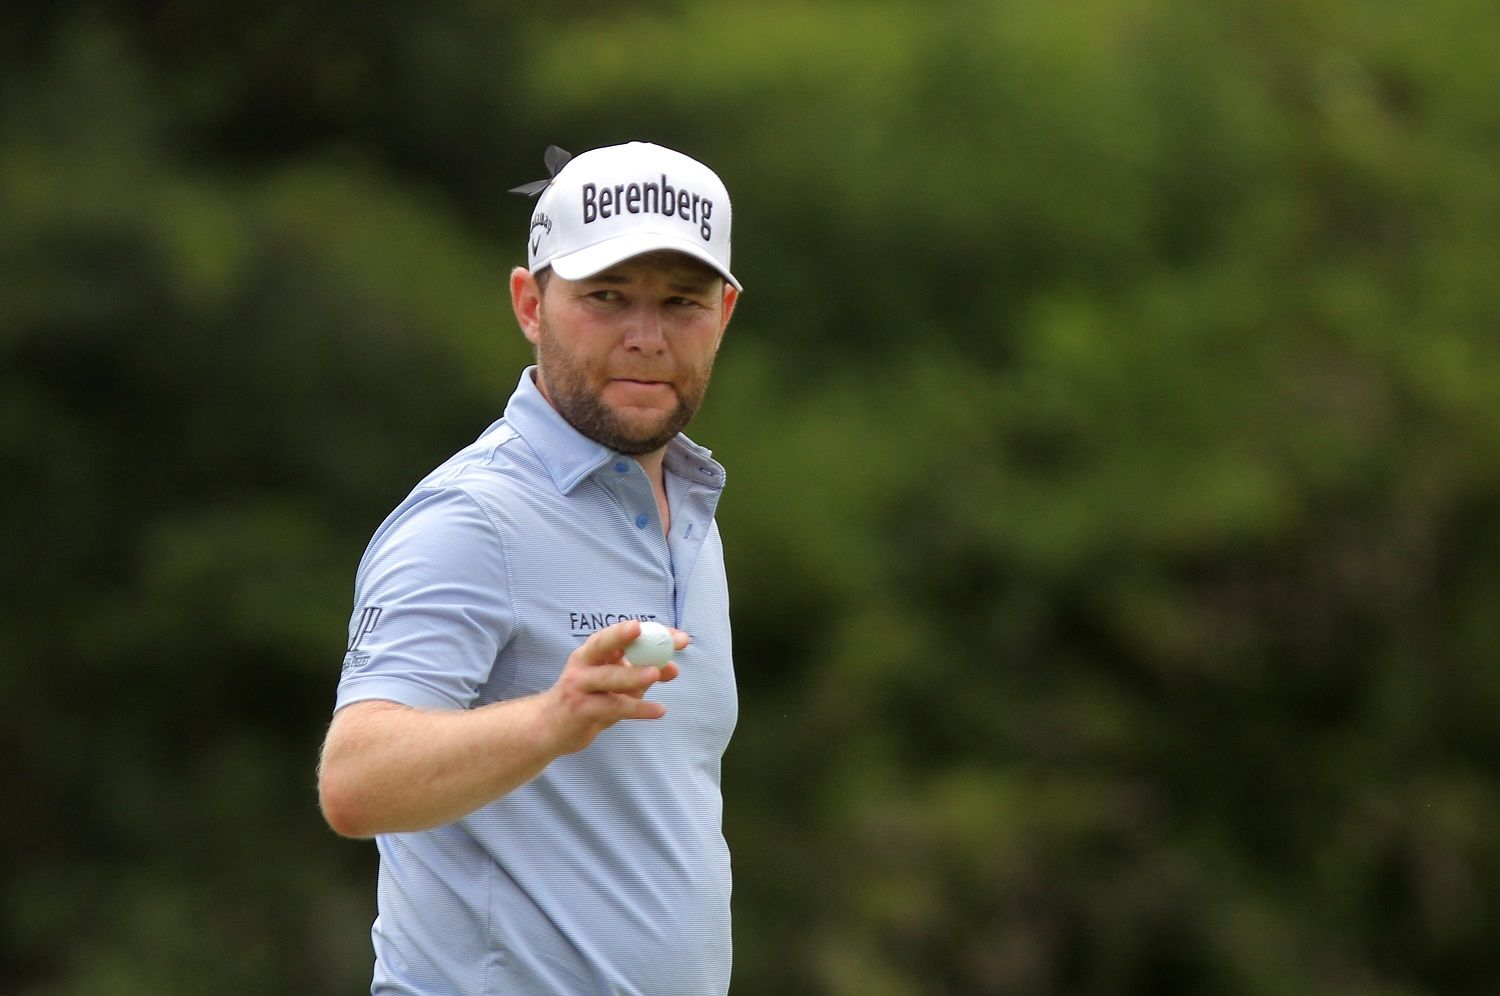 Branden Grace just made history... first ever to shoot 62 at a men's major  South Africa's Branden Grace just made golfing history.  https://www.thesouthafrican.com/branden-grace-just-made-history-first-ever-to-shoot-62-at-a-mens-major-video/